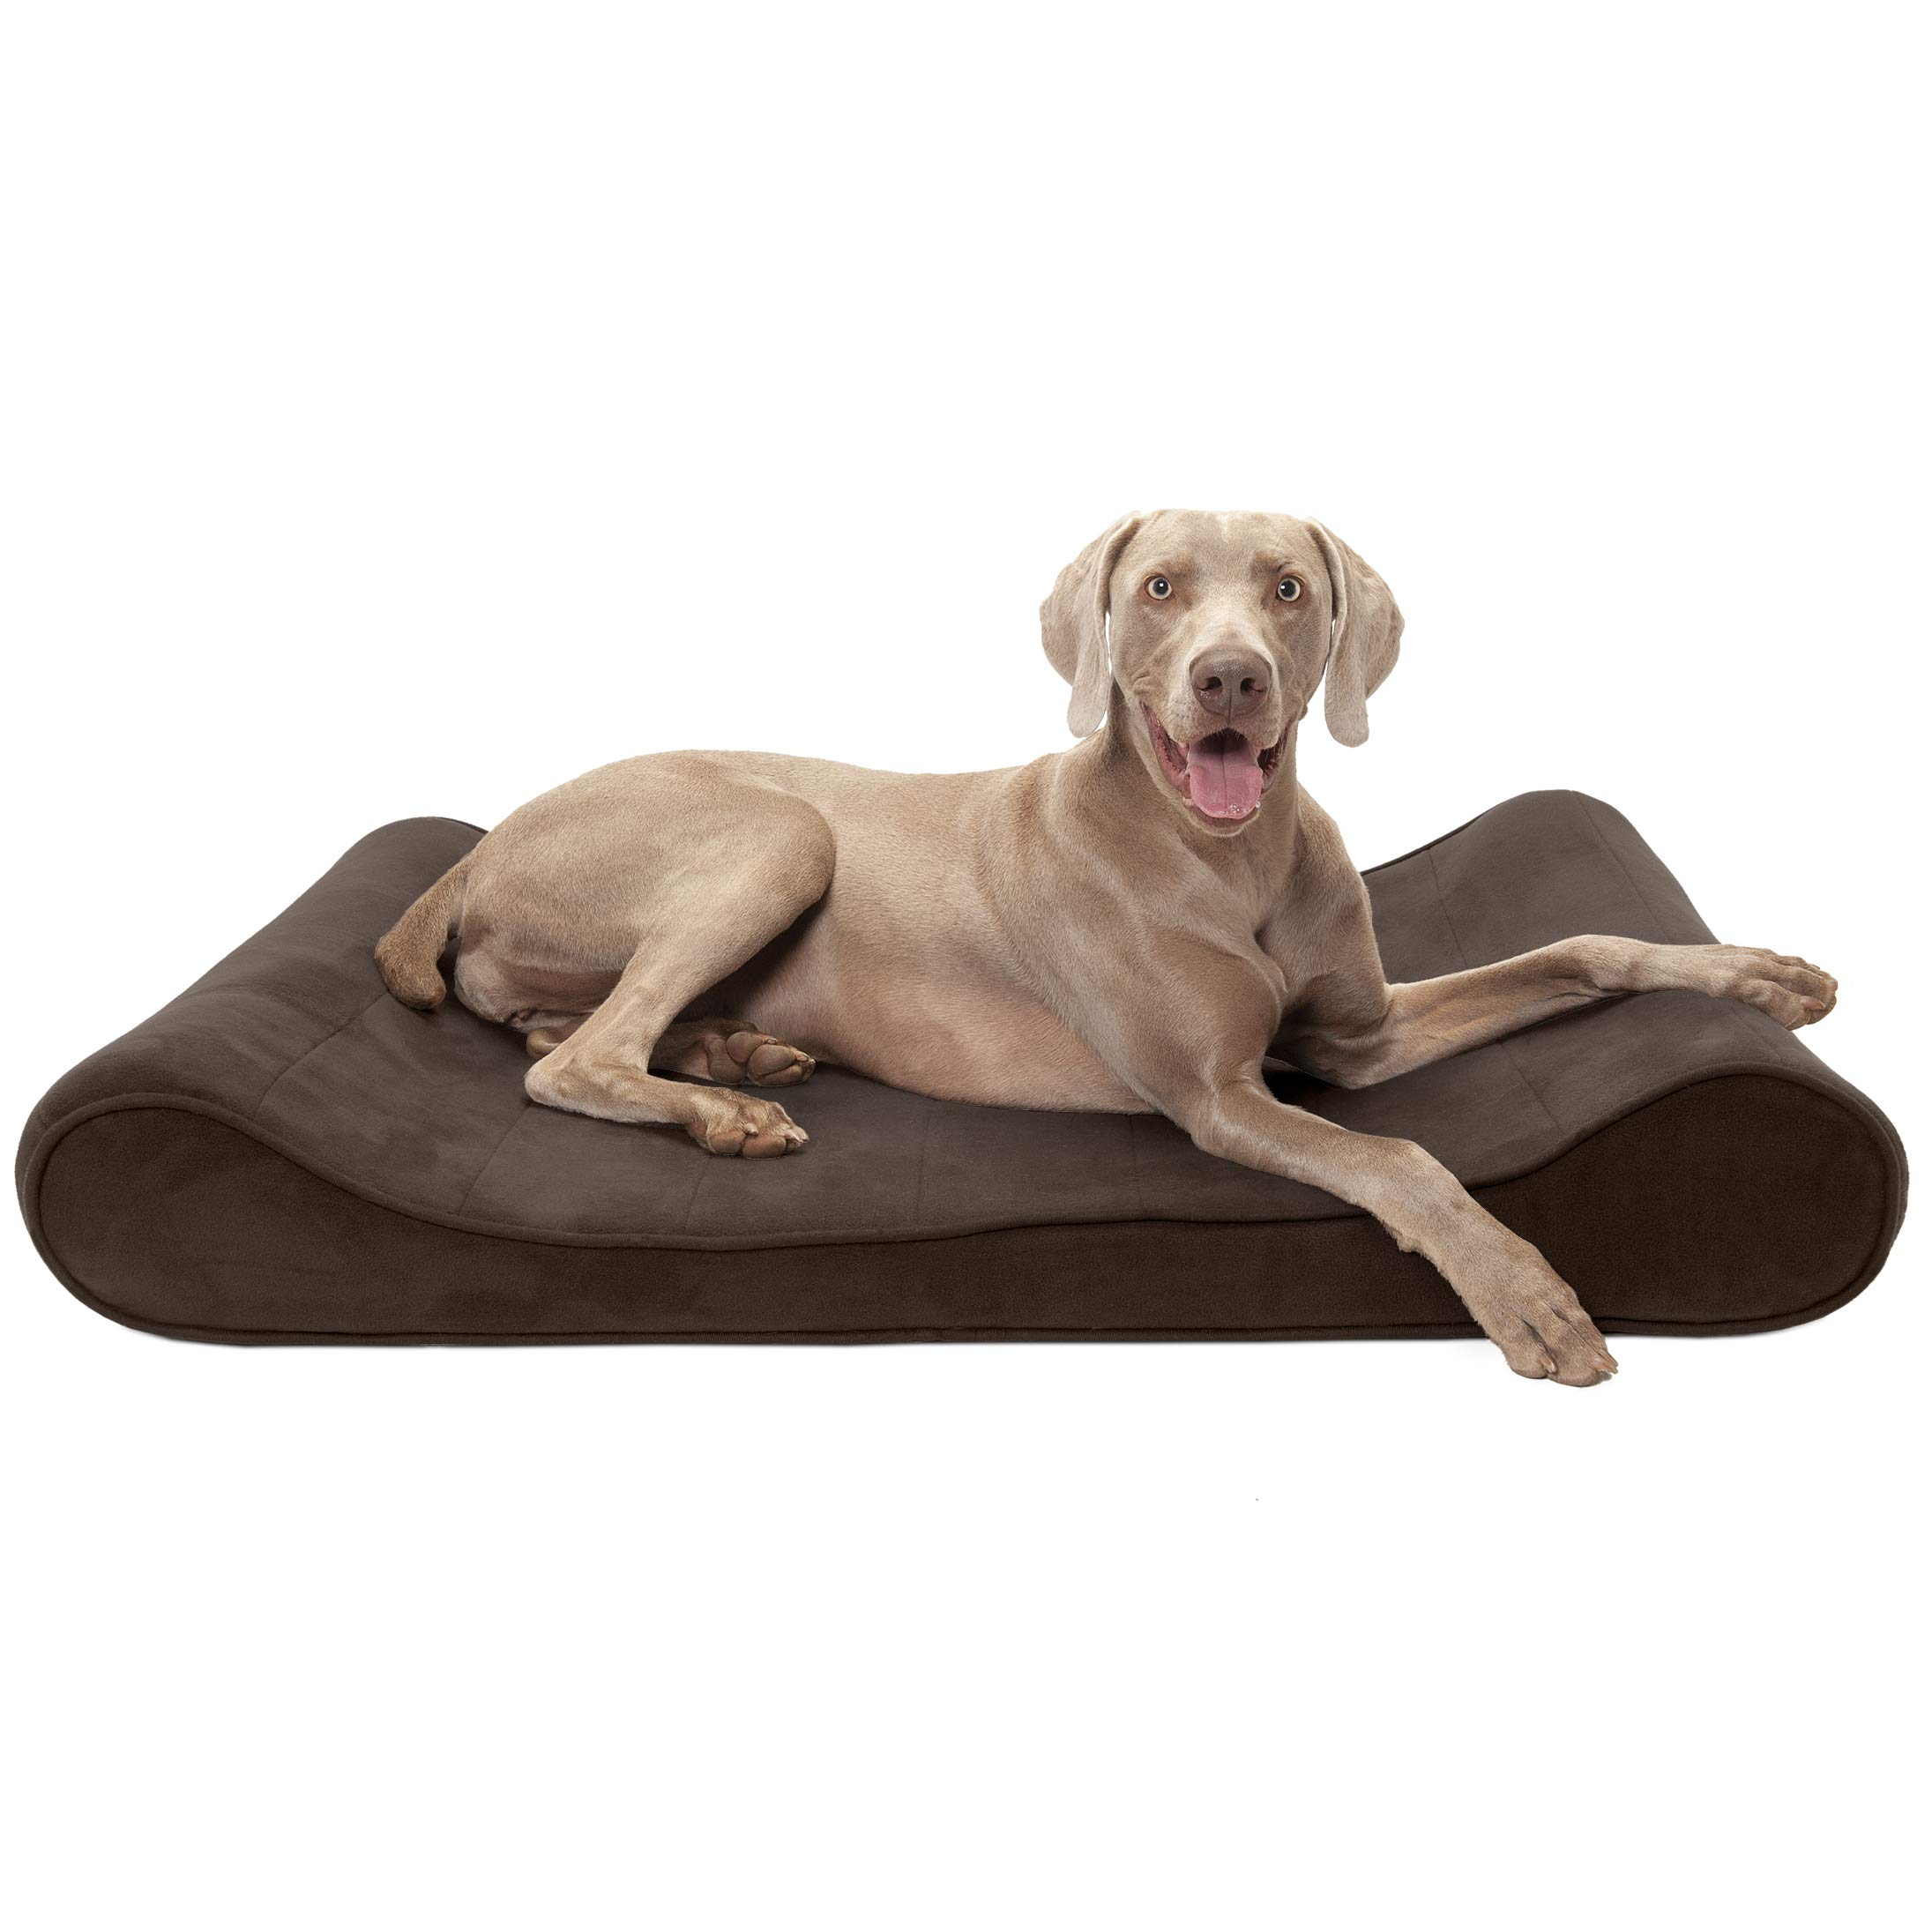 Furhaven Pet Dog Bed | Orthopedic Micro Velvet Ergonomic Luxe Lounger Cradle Mattress Contour Pet Bed w/ Removable Cover for Dogs & Cats, Espresso, Jumbo by Furhaven